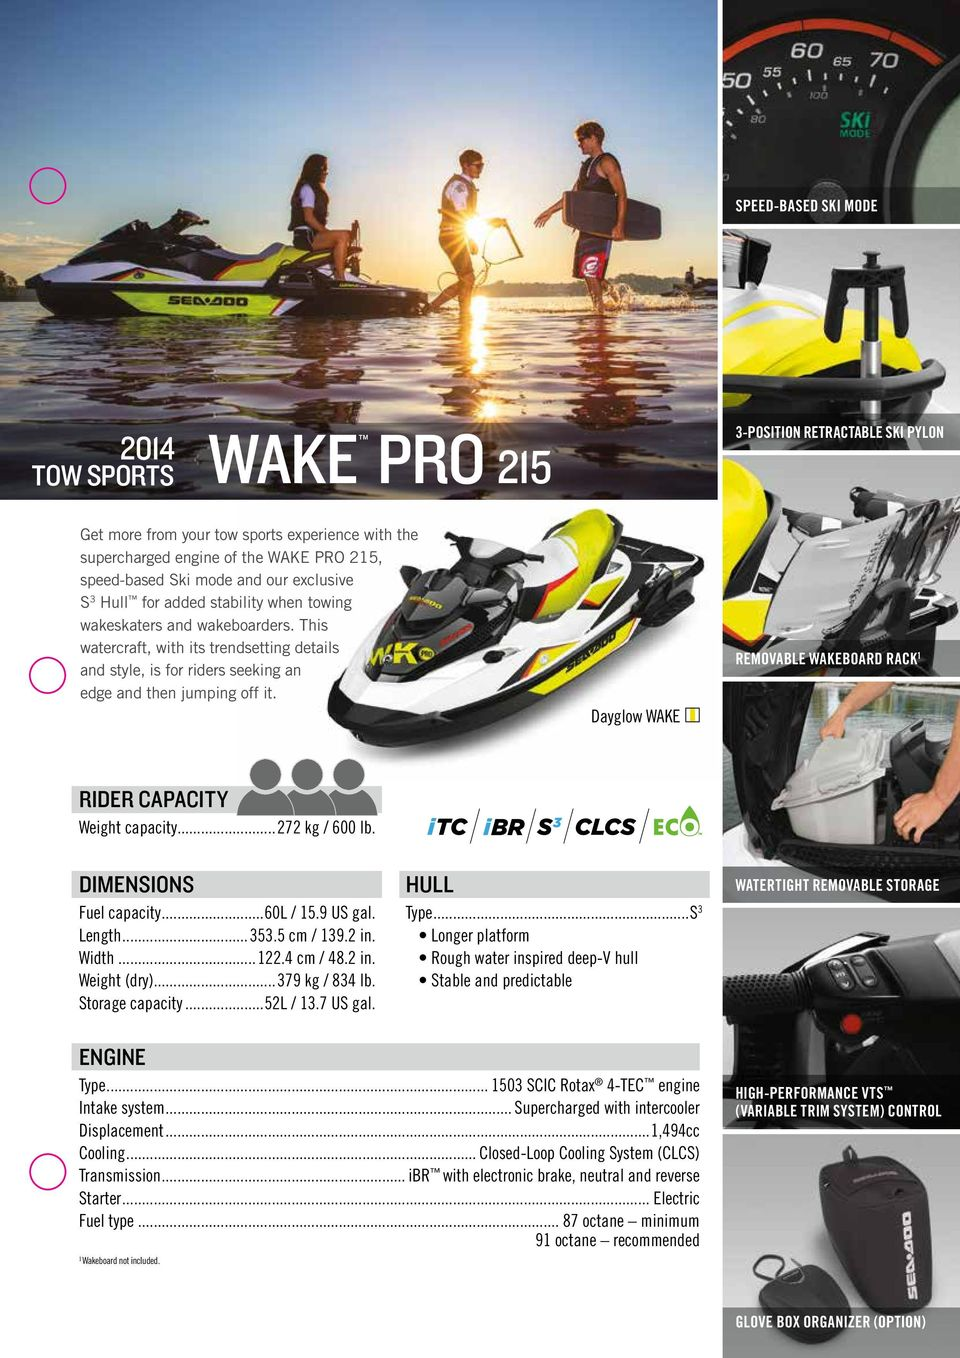 Dayglow WAKE Removable wakeboard rack 1 Rider Capacity Weight capacity...272 kg / 600 lb. Dimensions Fuel capacity...60l / 15.9 US gal. Length...353.5 cm / 139.2 in. Width...122.4 cm / 48.2 in. Weight (dry).